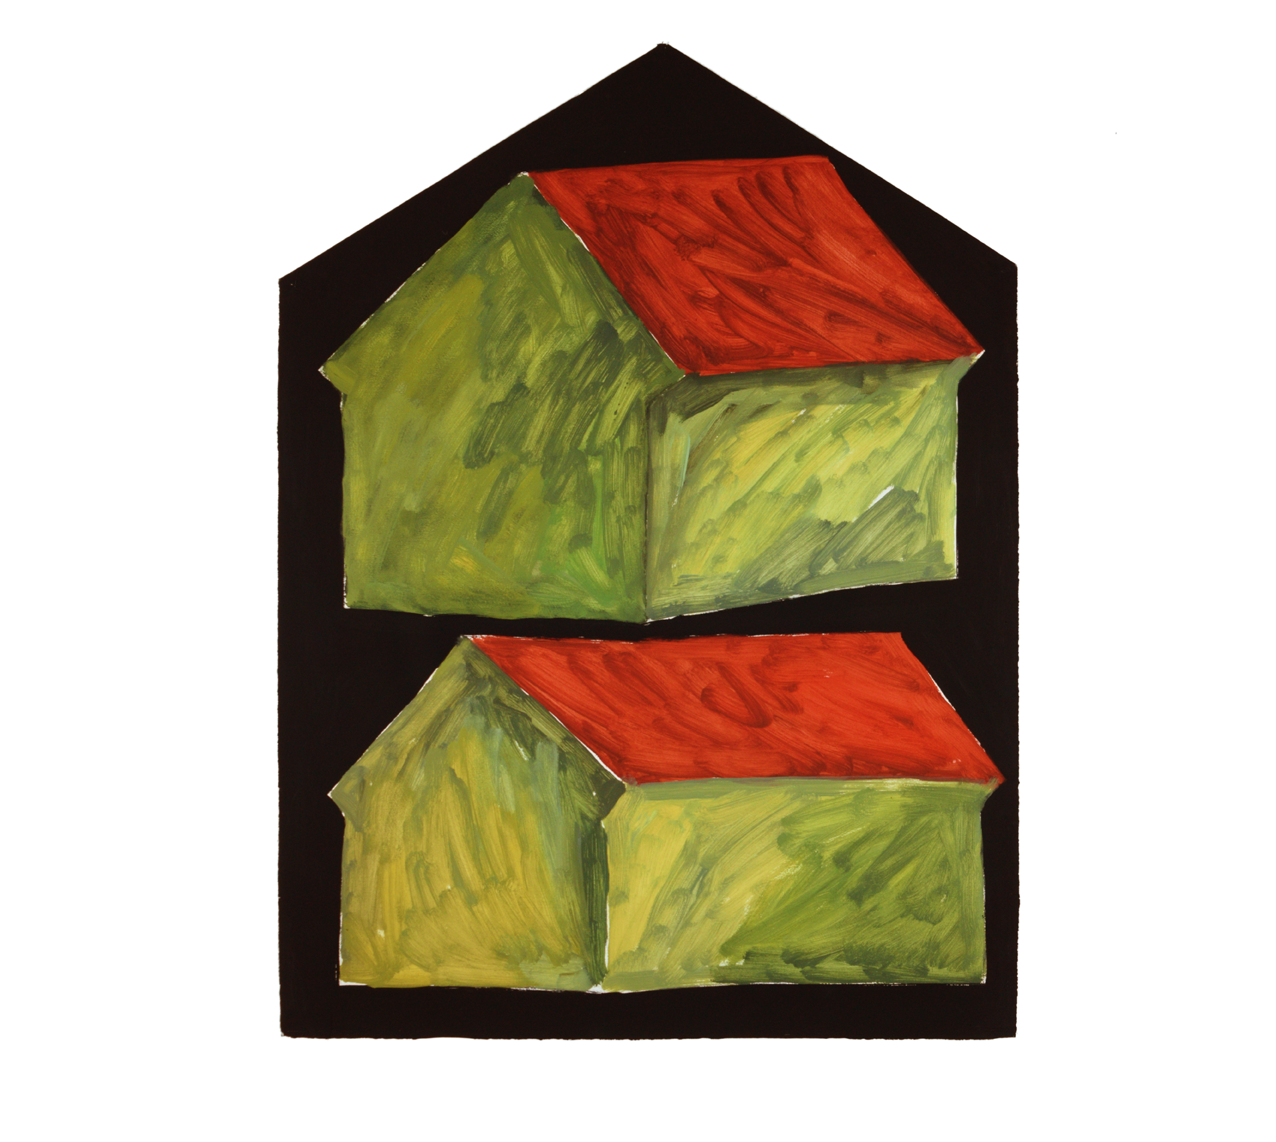 """Maison double verte lumineuse"" 1981, peinture à l'huile sur papier, 106 x 79cm -Collection Don & Nancy Eiler, Madison Wisconsin, USA - Photo Hadler/Stuhr"